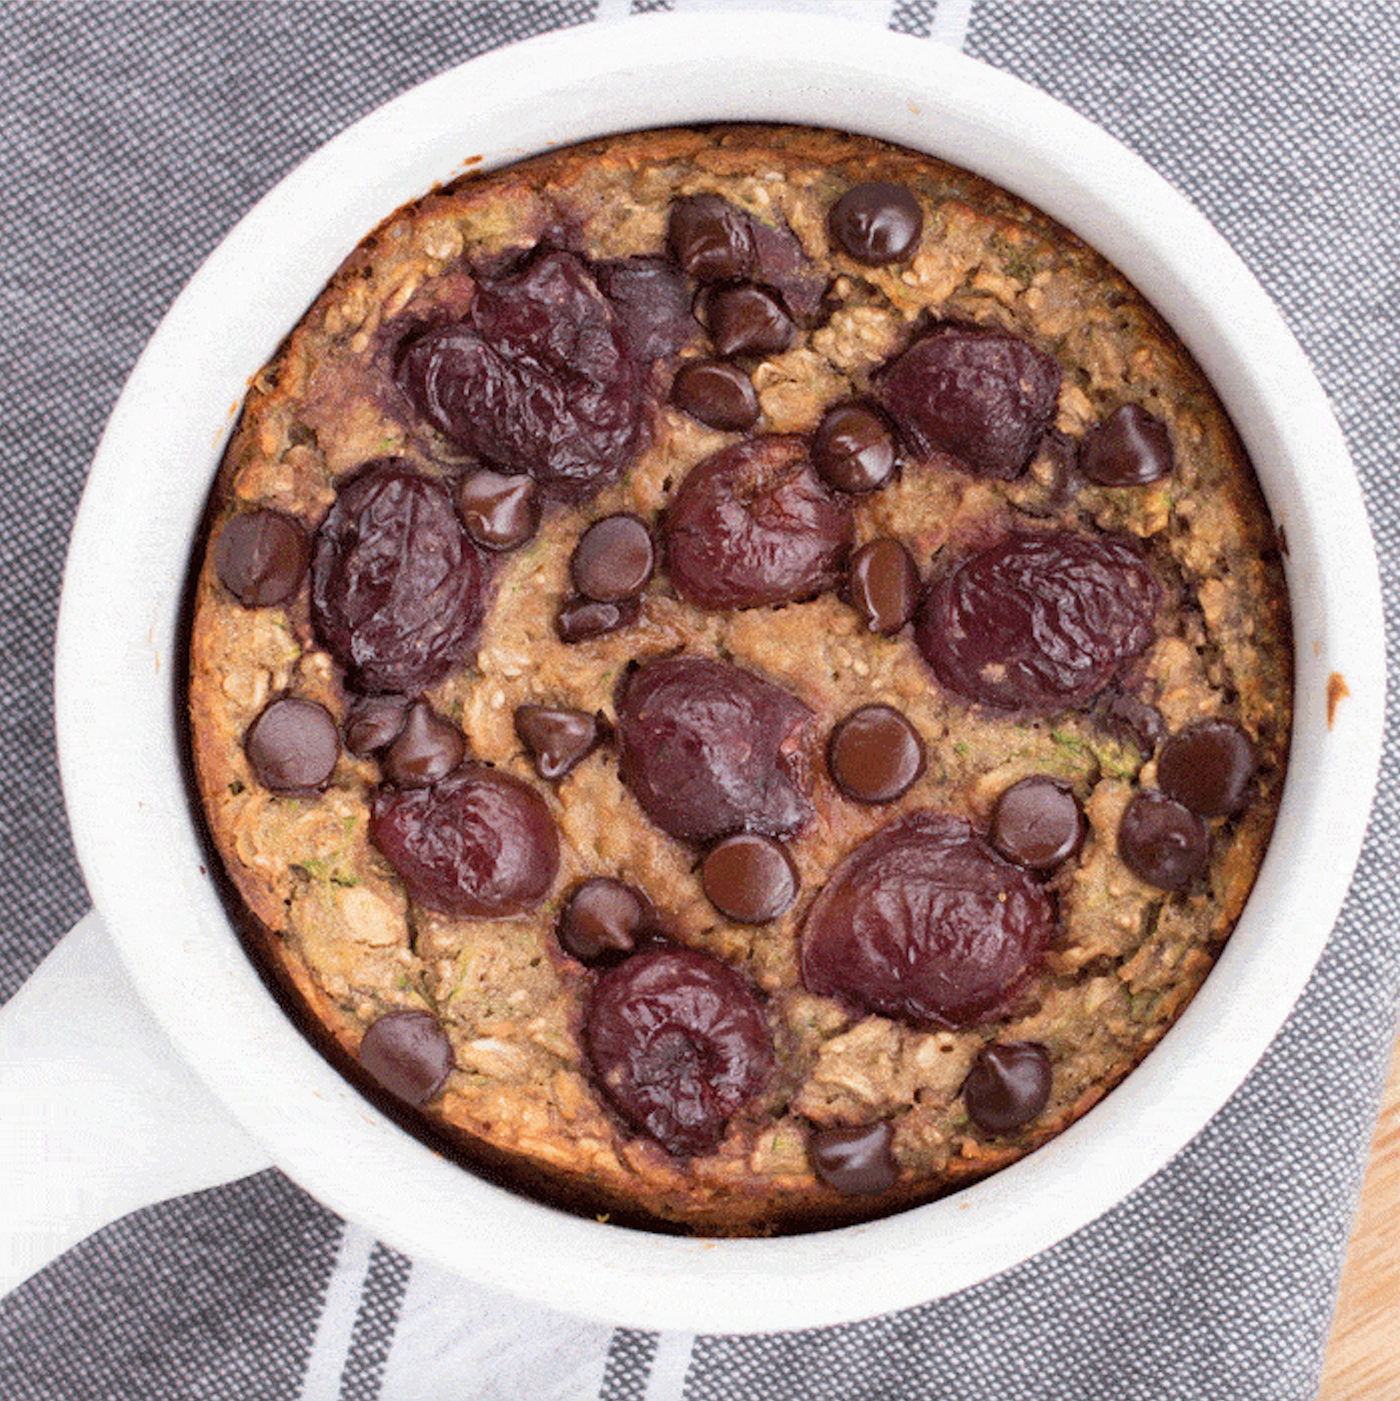 Chocolate Covered Cherry Baked Oatmeal